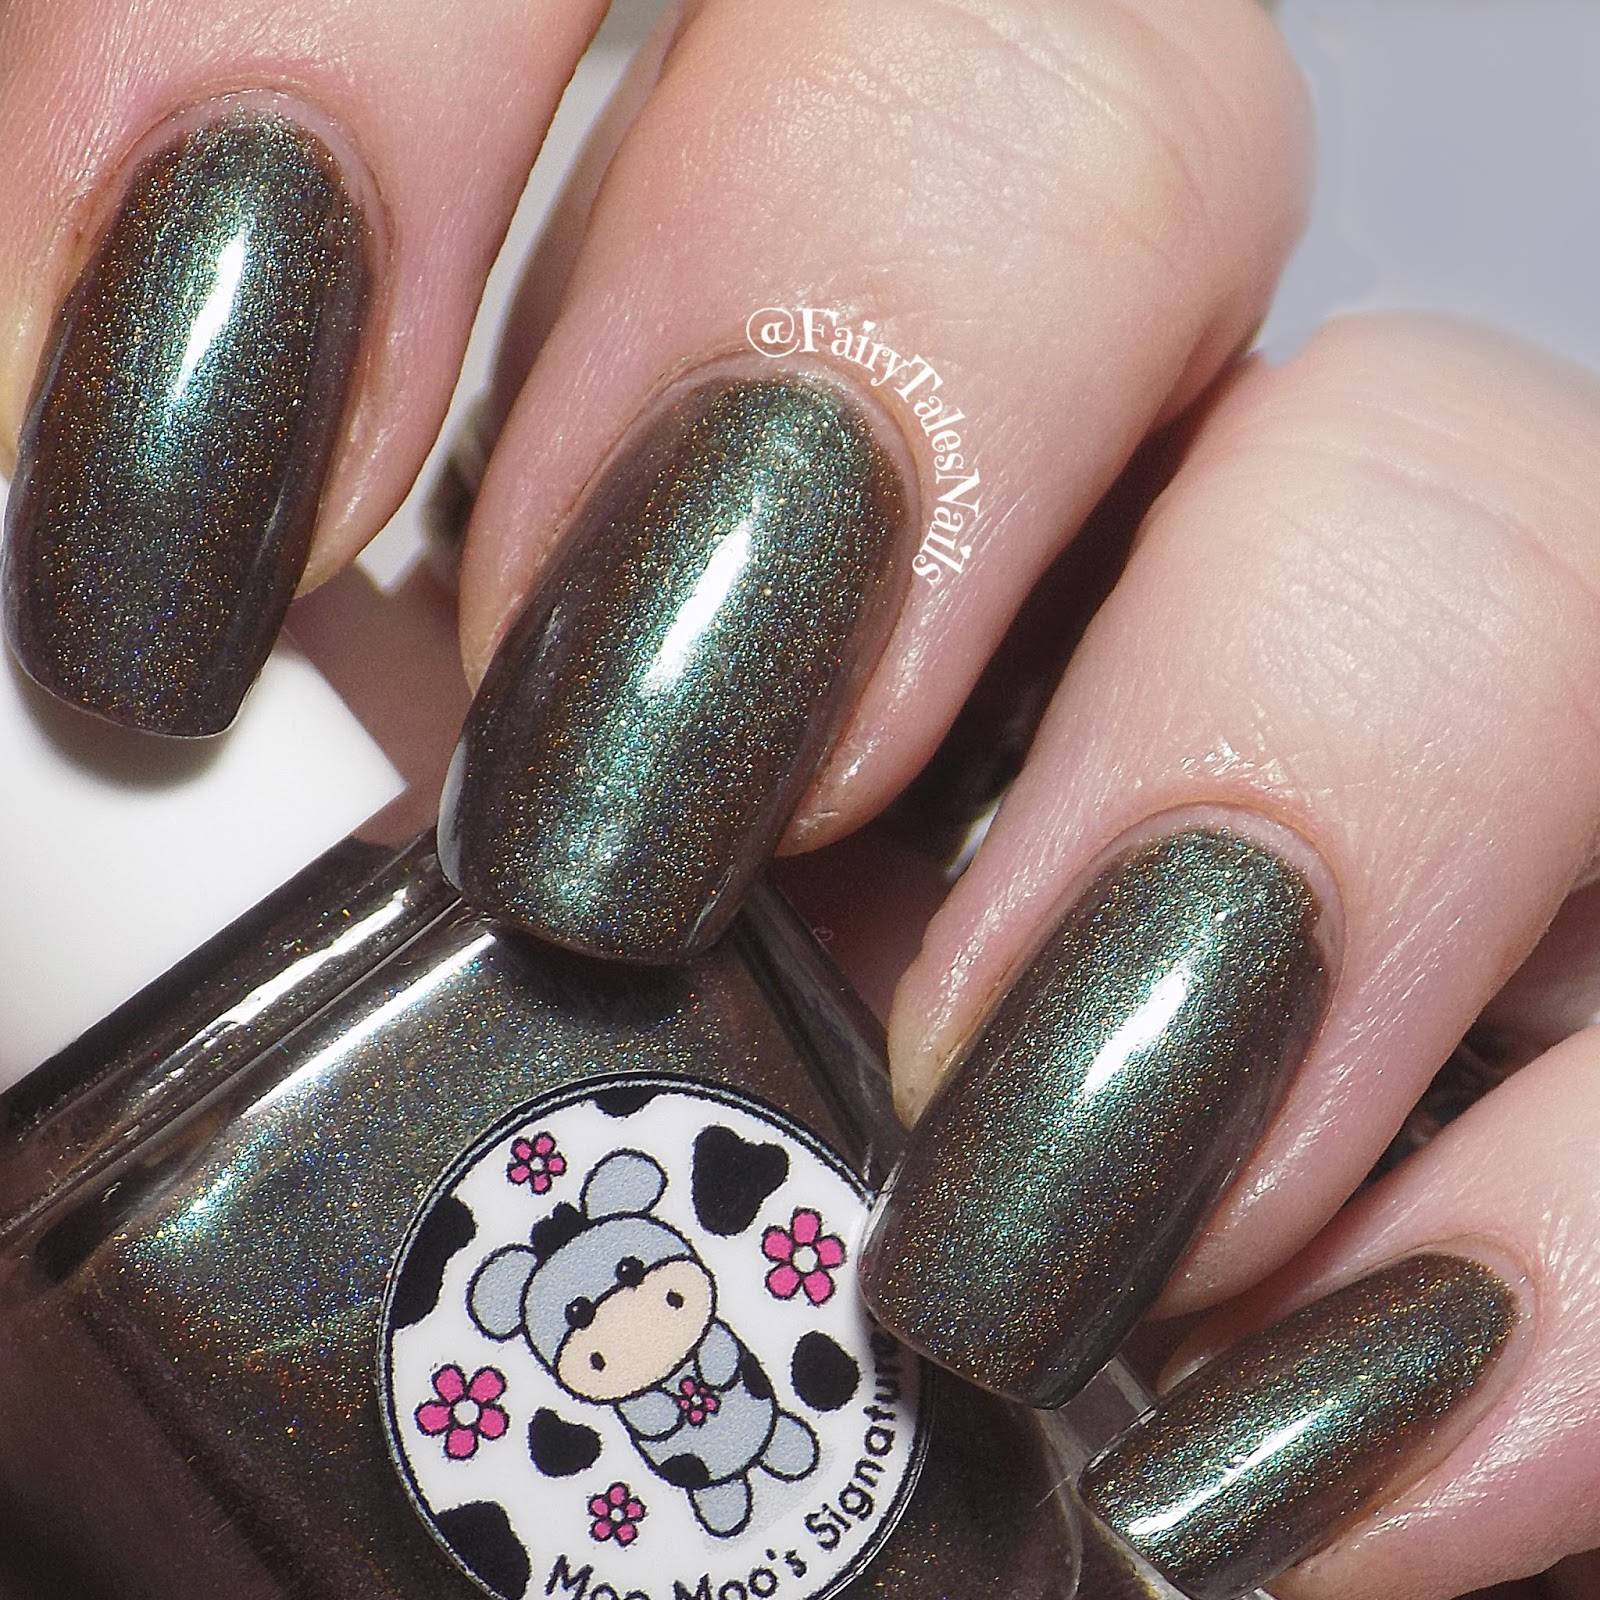 FairyTales Nails: New To Me Brand Moo Moo\'s Signatures Swatch & Review